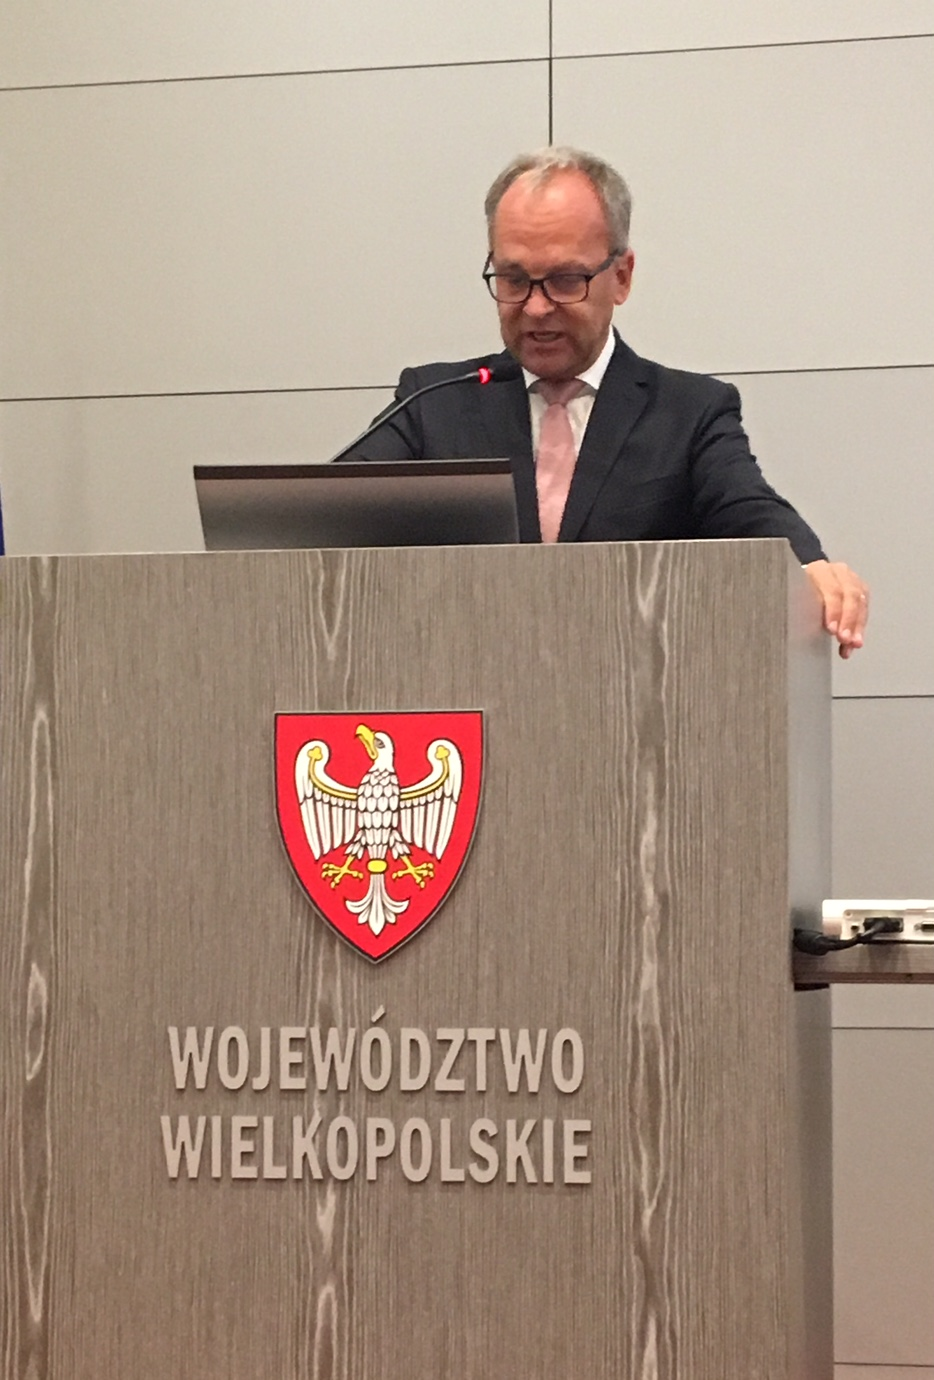 Landtagsdirektor Peter von Unruh redet in der Wielkopolska beim ersten Jugendparlament der Partnerregion in Polen.Foto: Hessischer Landtag, Kanzlei 2017